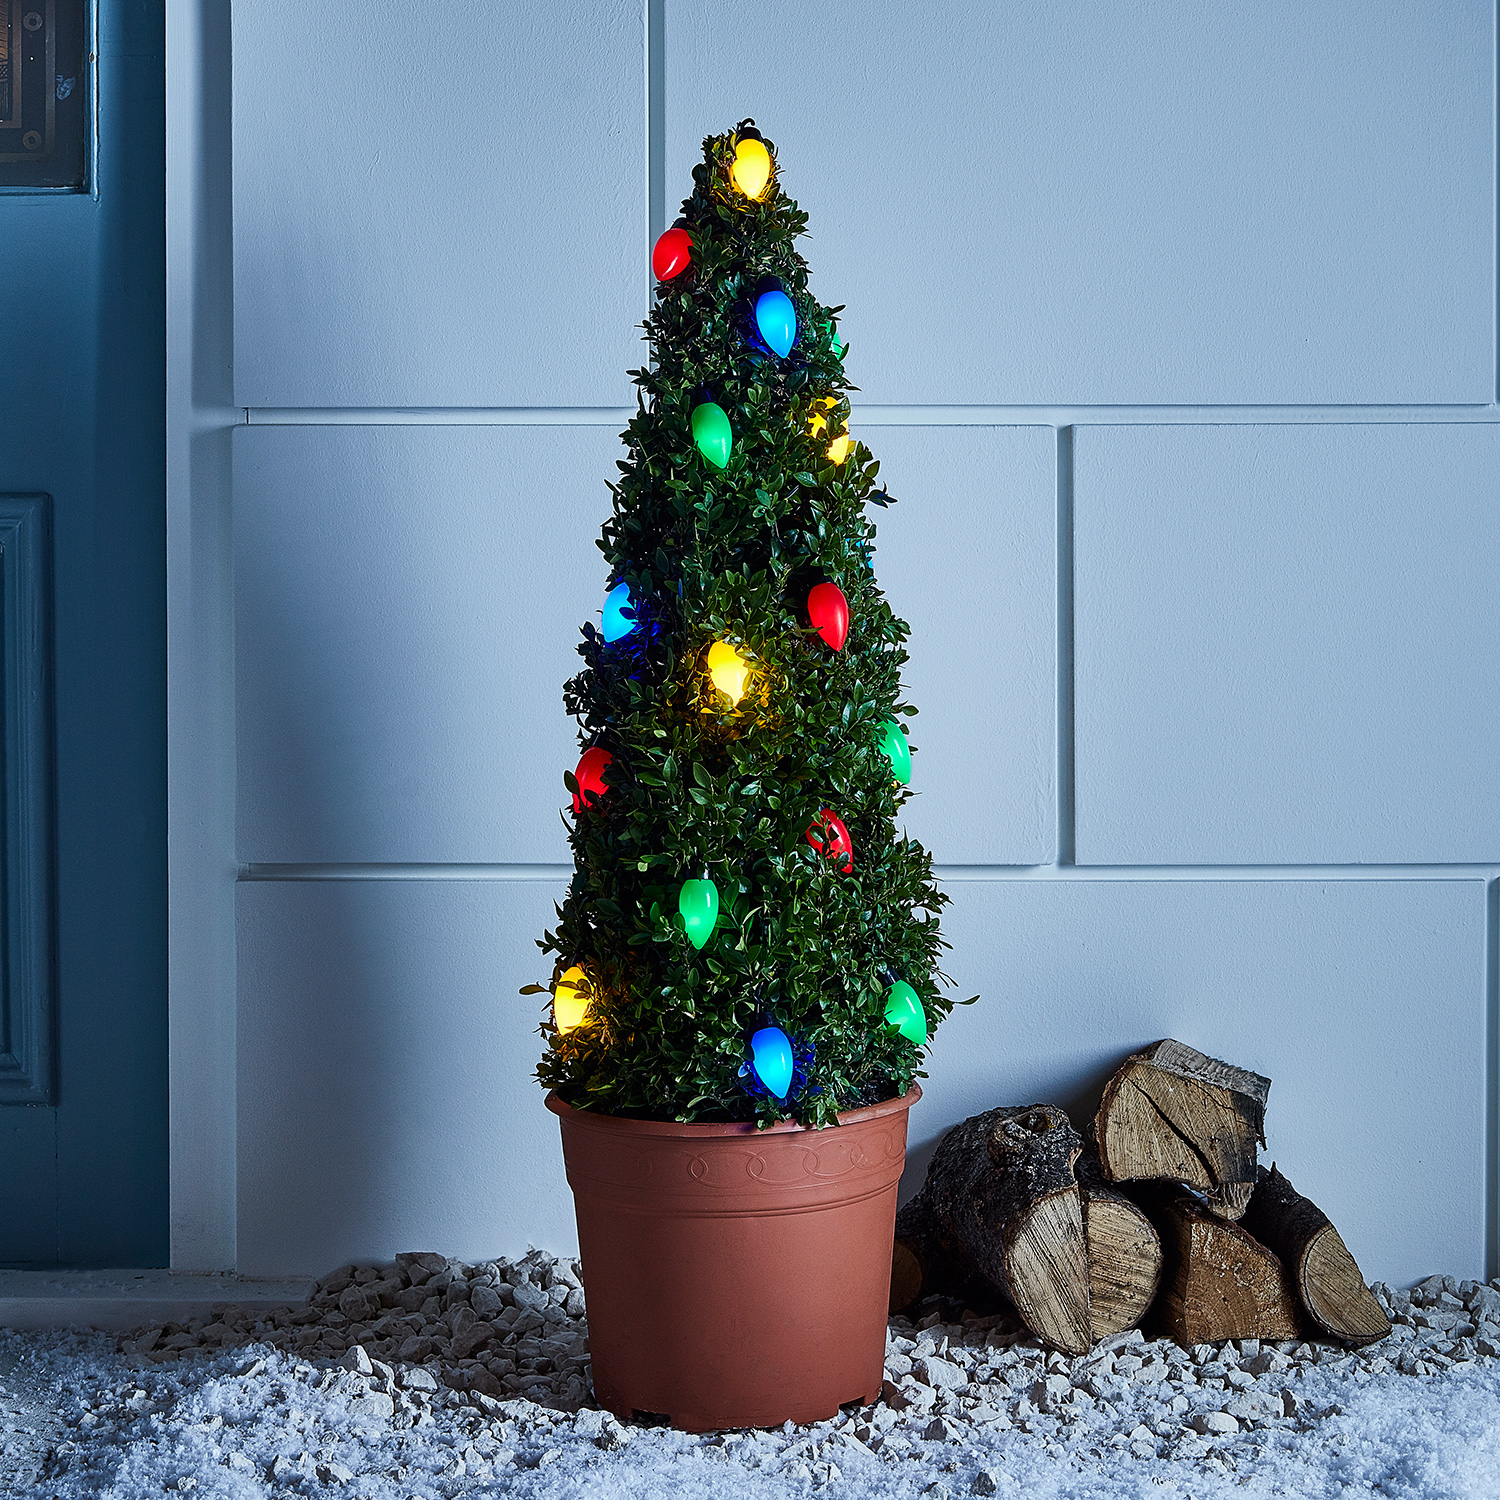 Details About 20 Multi Colored C9 Style Led Outdoor Battery Operated Christmas String Lights